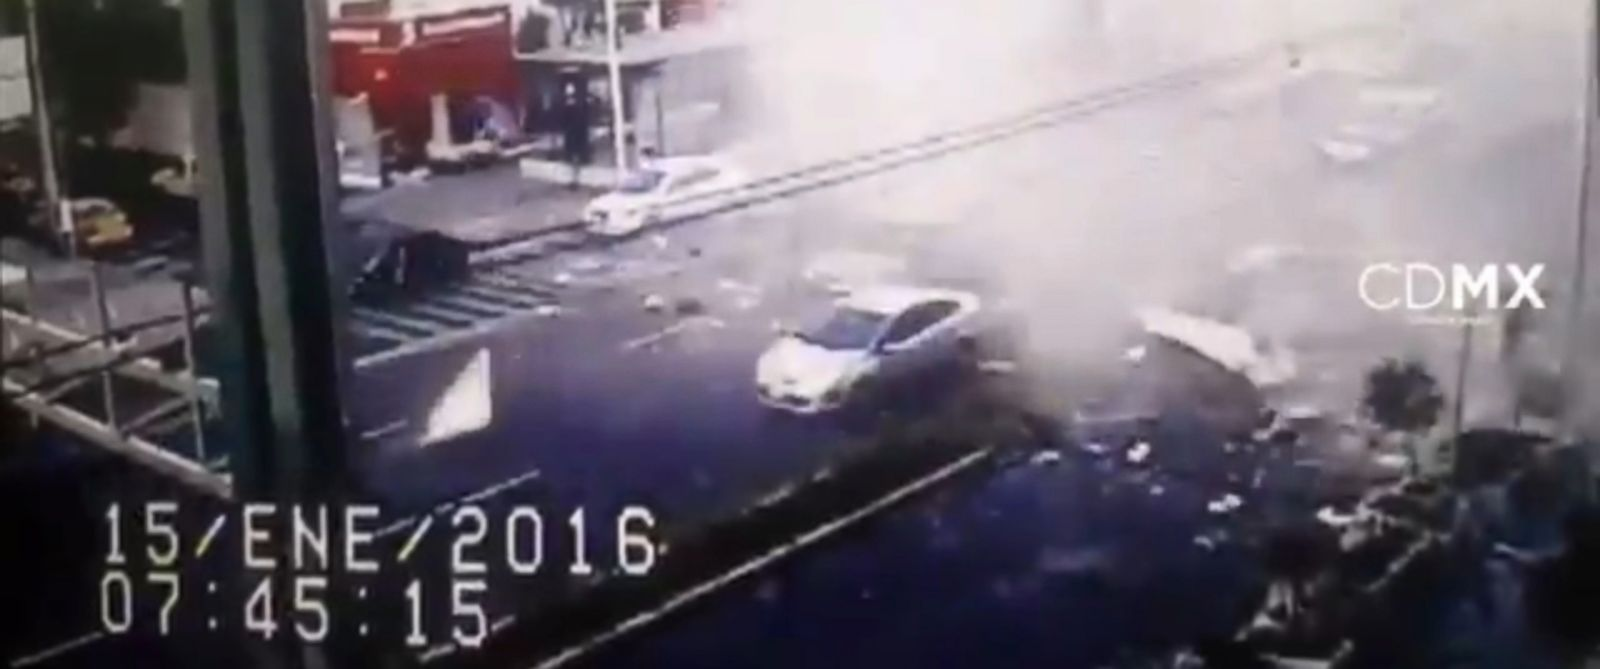 PHOTO: Video of an explosion at a Mexico City restaurant was posted to an official city Twitter account.